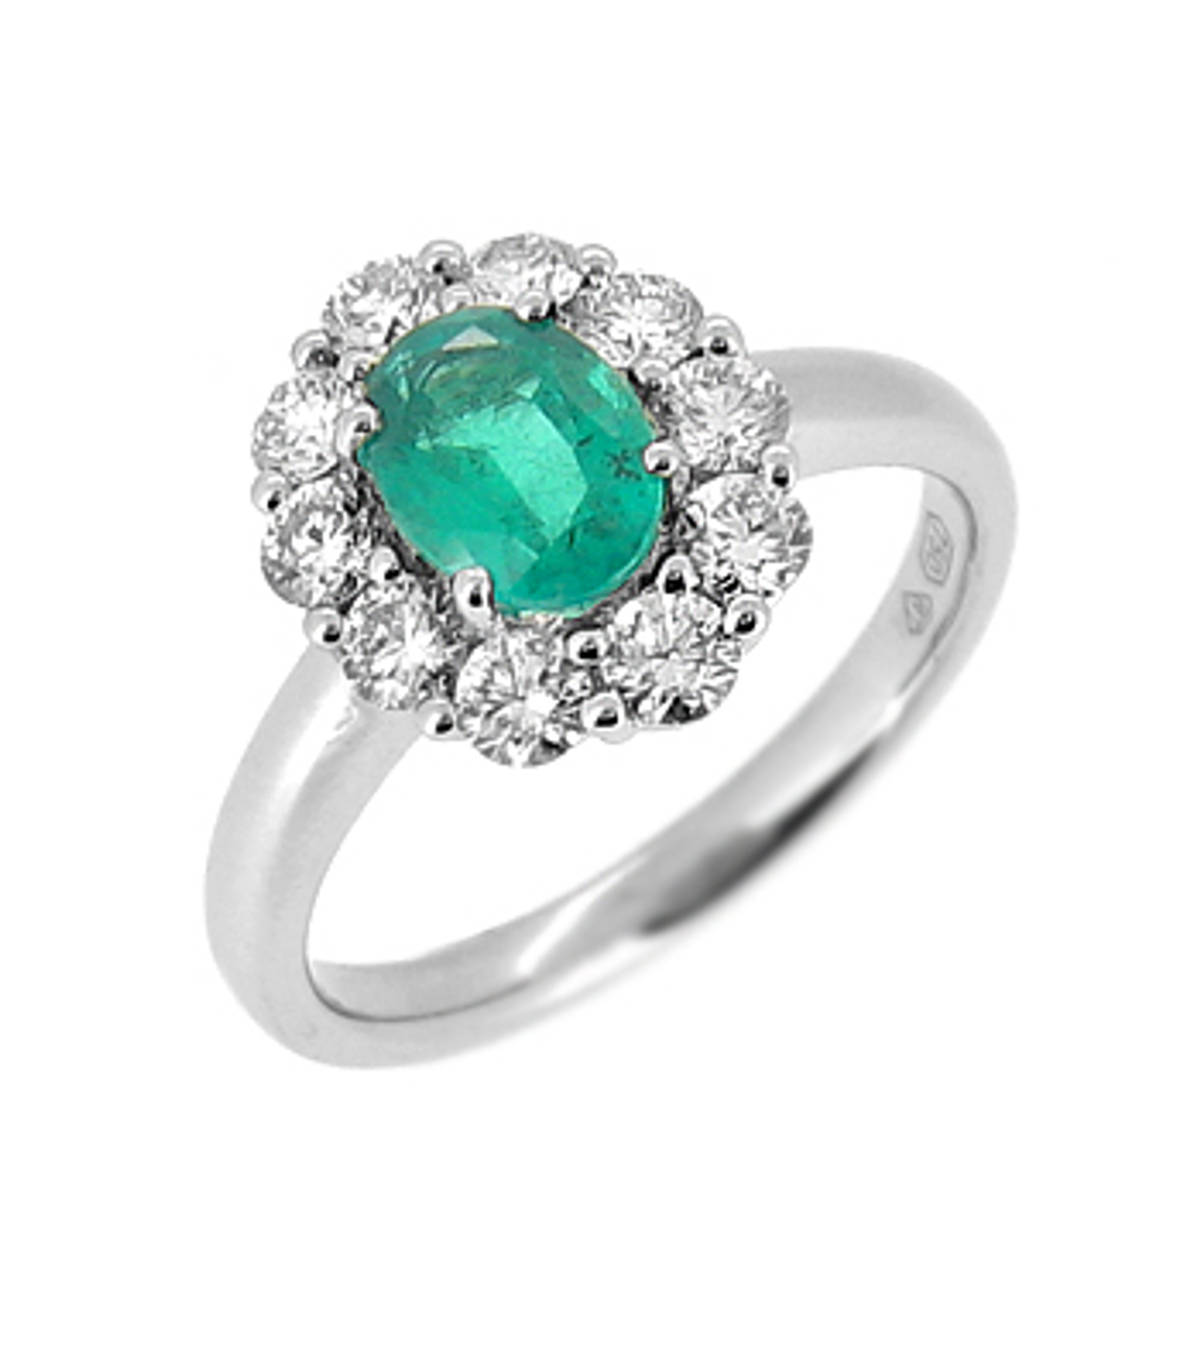 Oval emerald and diamond cluster ring in 18 ct white gold